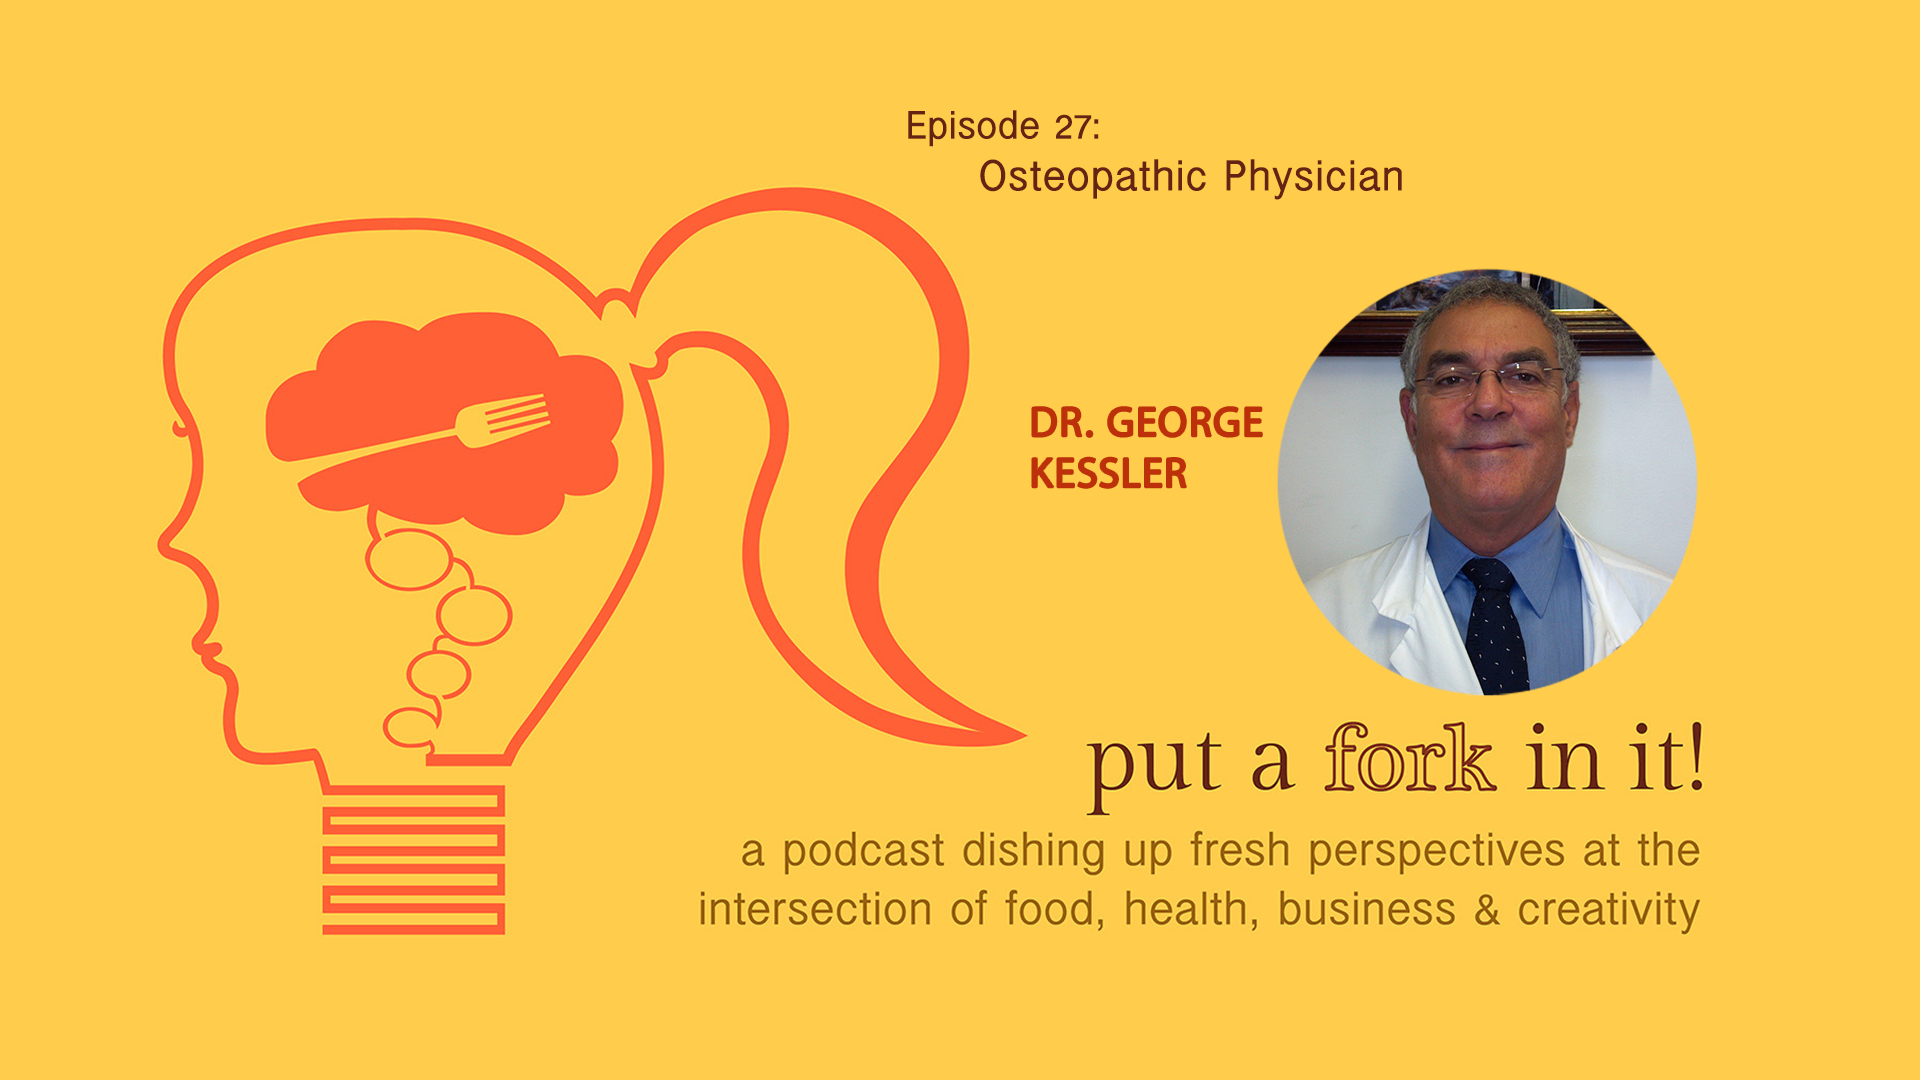 27: Dr. George Kessler, Board Certified Osteopathic Physician